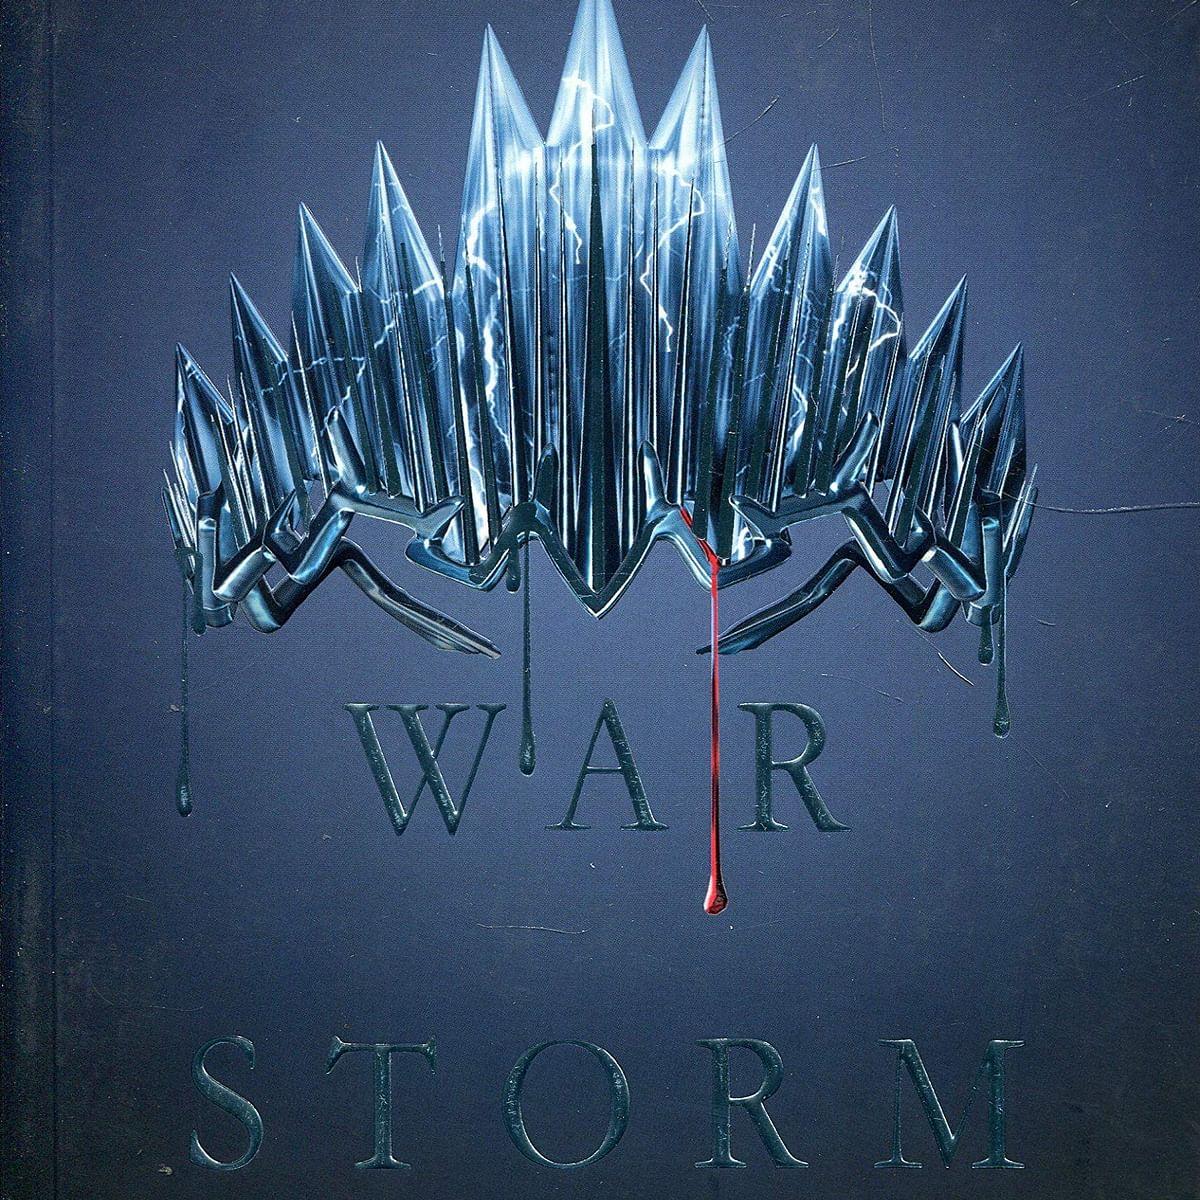 Movie-like finale for this fantasy fiction